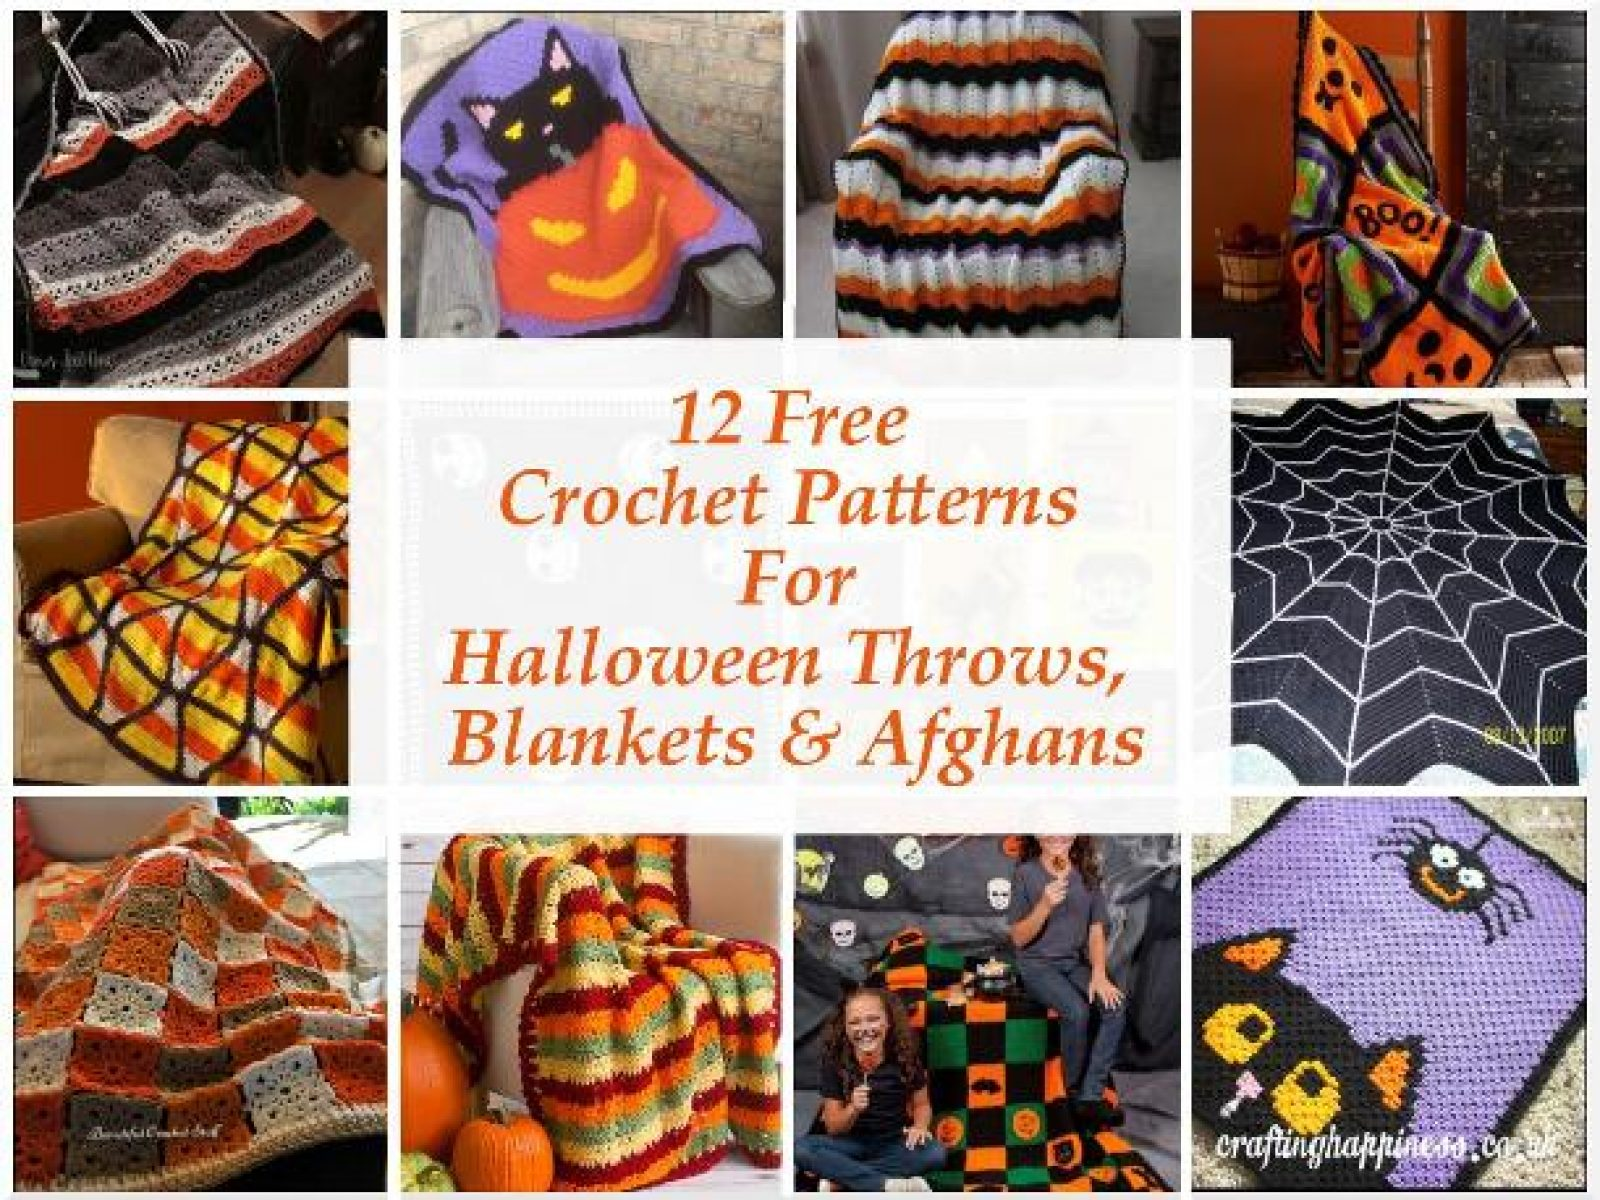 12 Free Crochet Halloween Blanket, Throw & Afghan Patterns